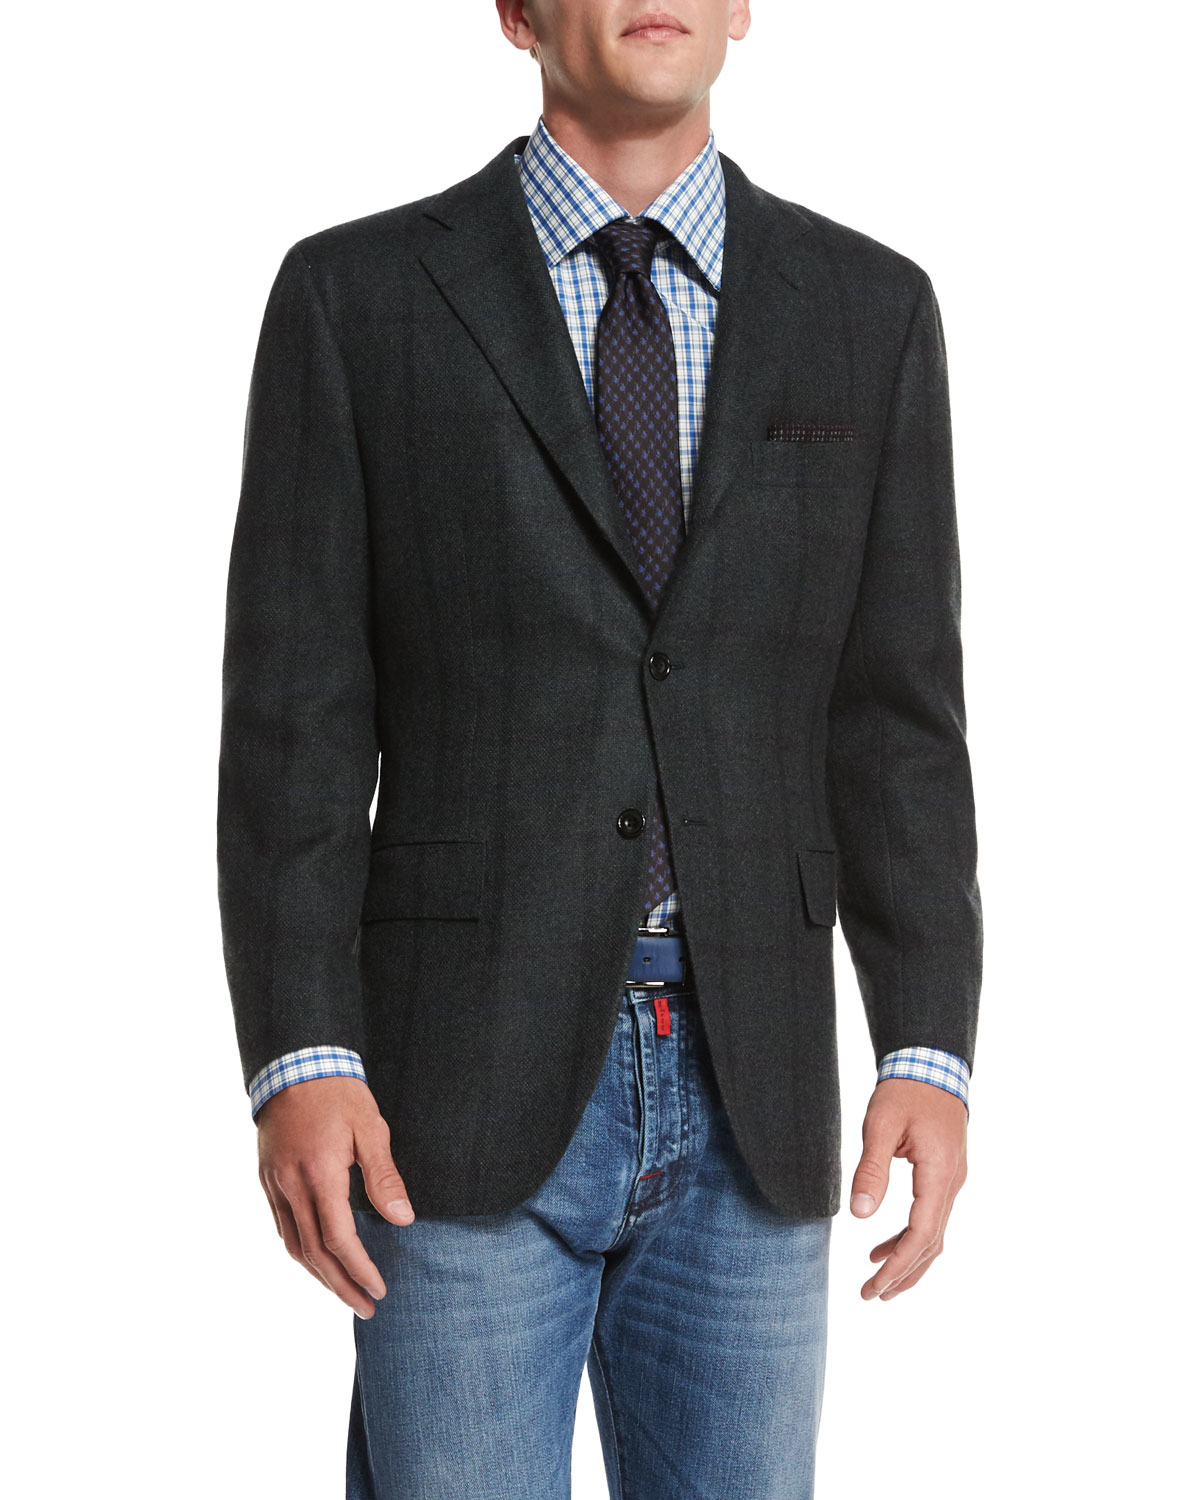 Lyst Kiton Cashmere Plaid Sport Coat In Green For Men